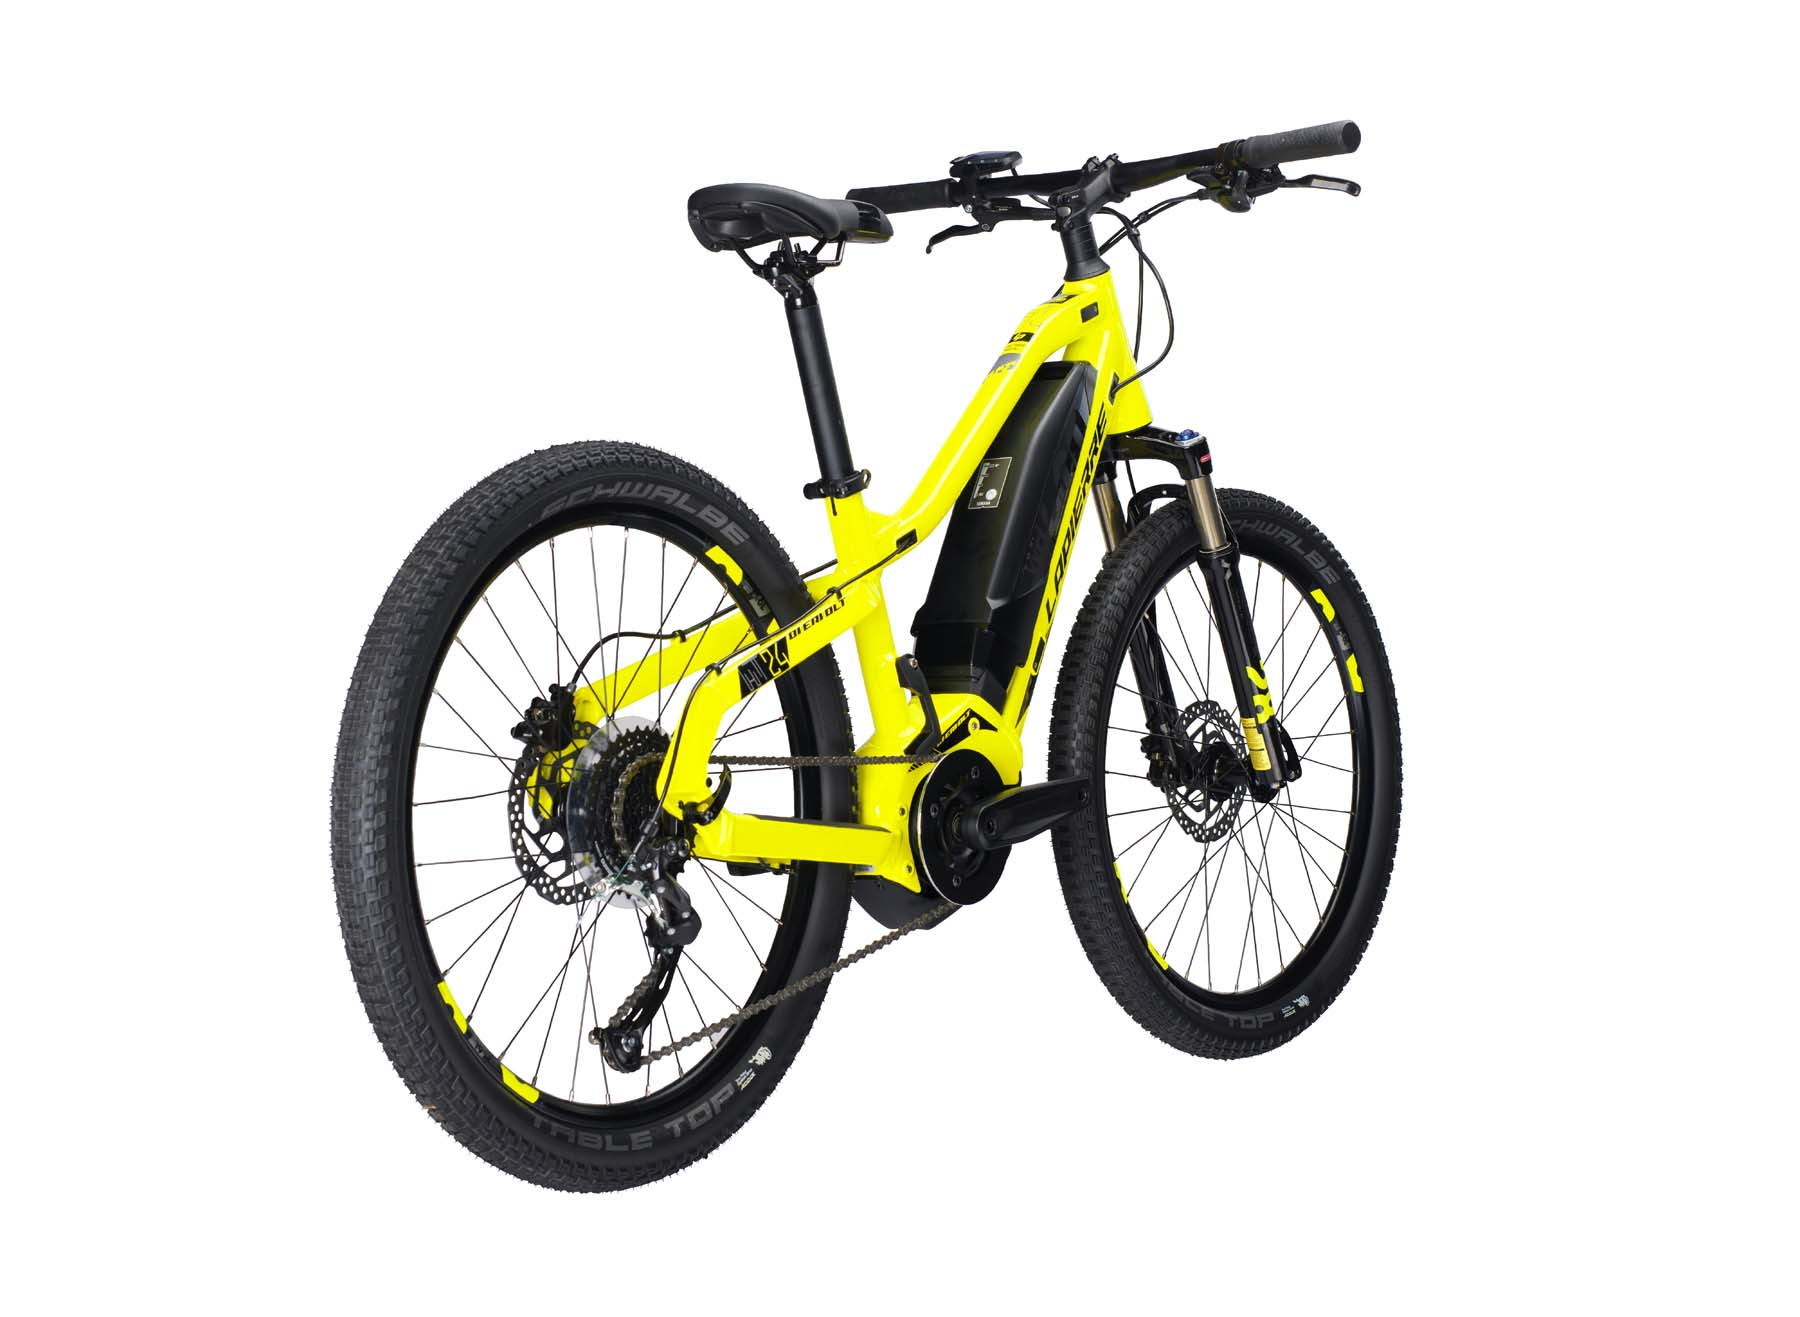 Lapierre Overvolt HT 24 2021 Kids Electric Mountain Bike - View 3